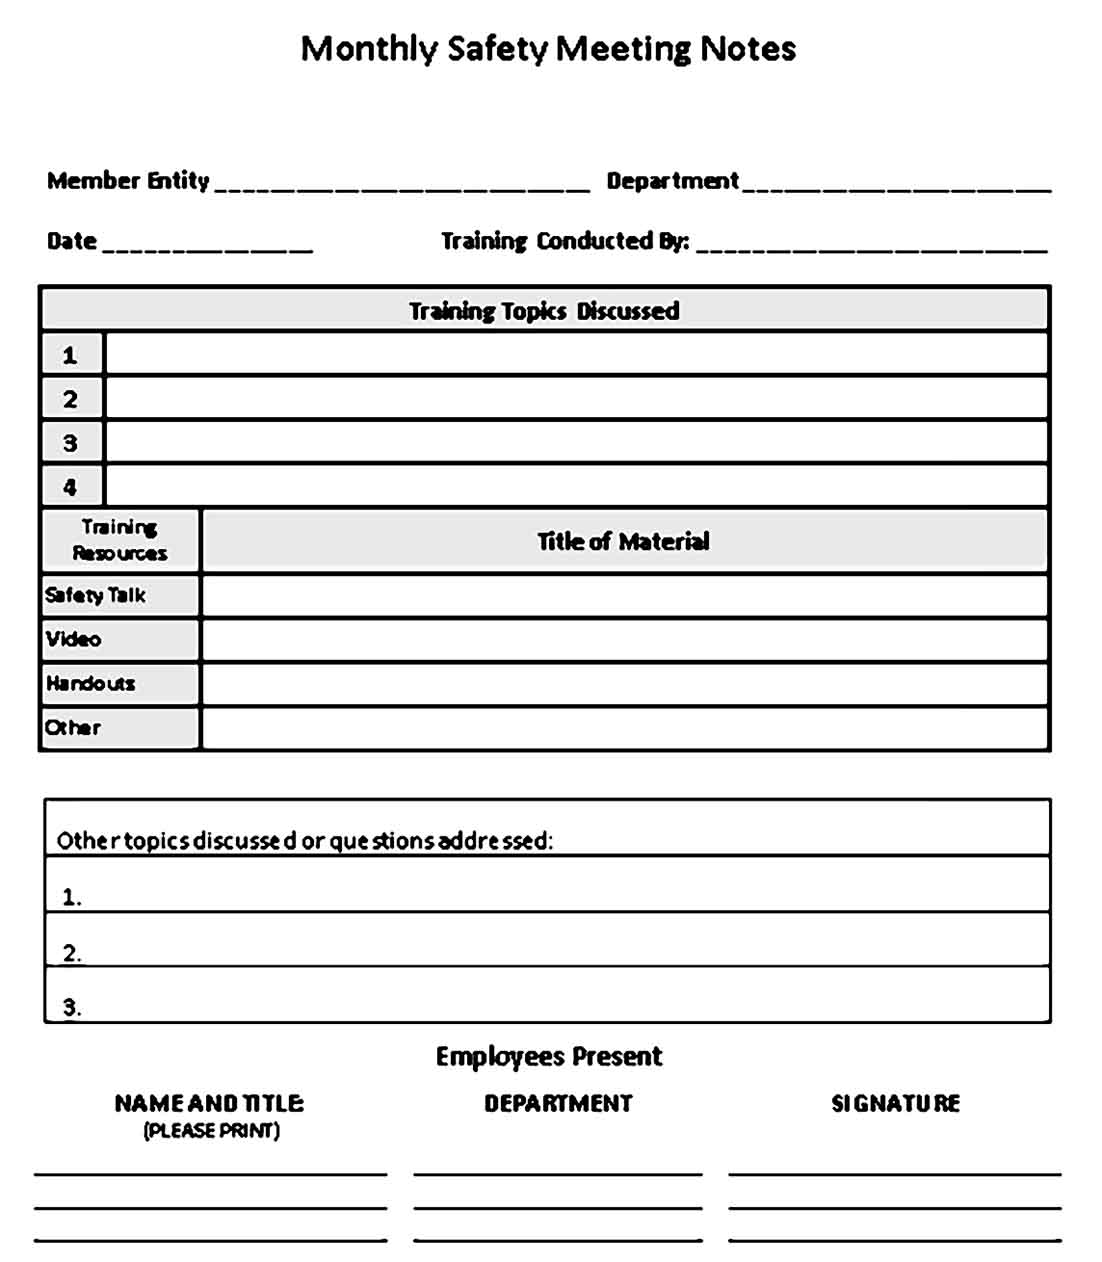 Safety Meeting Notes Template